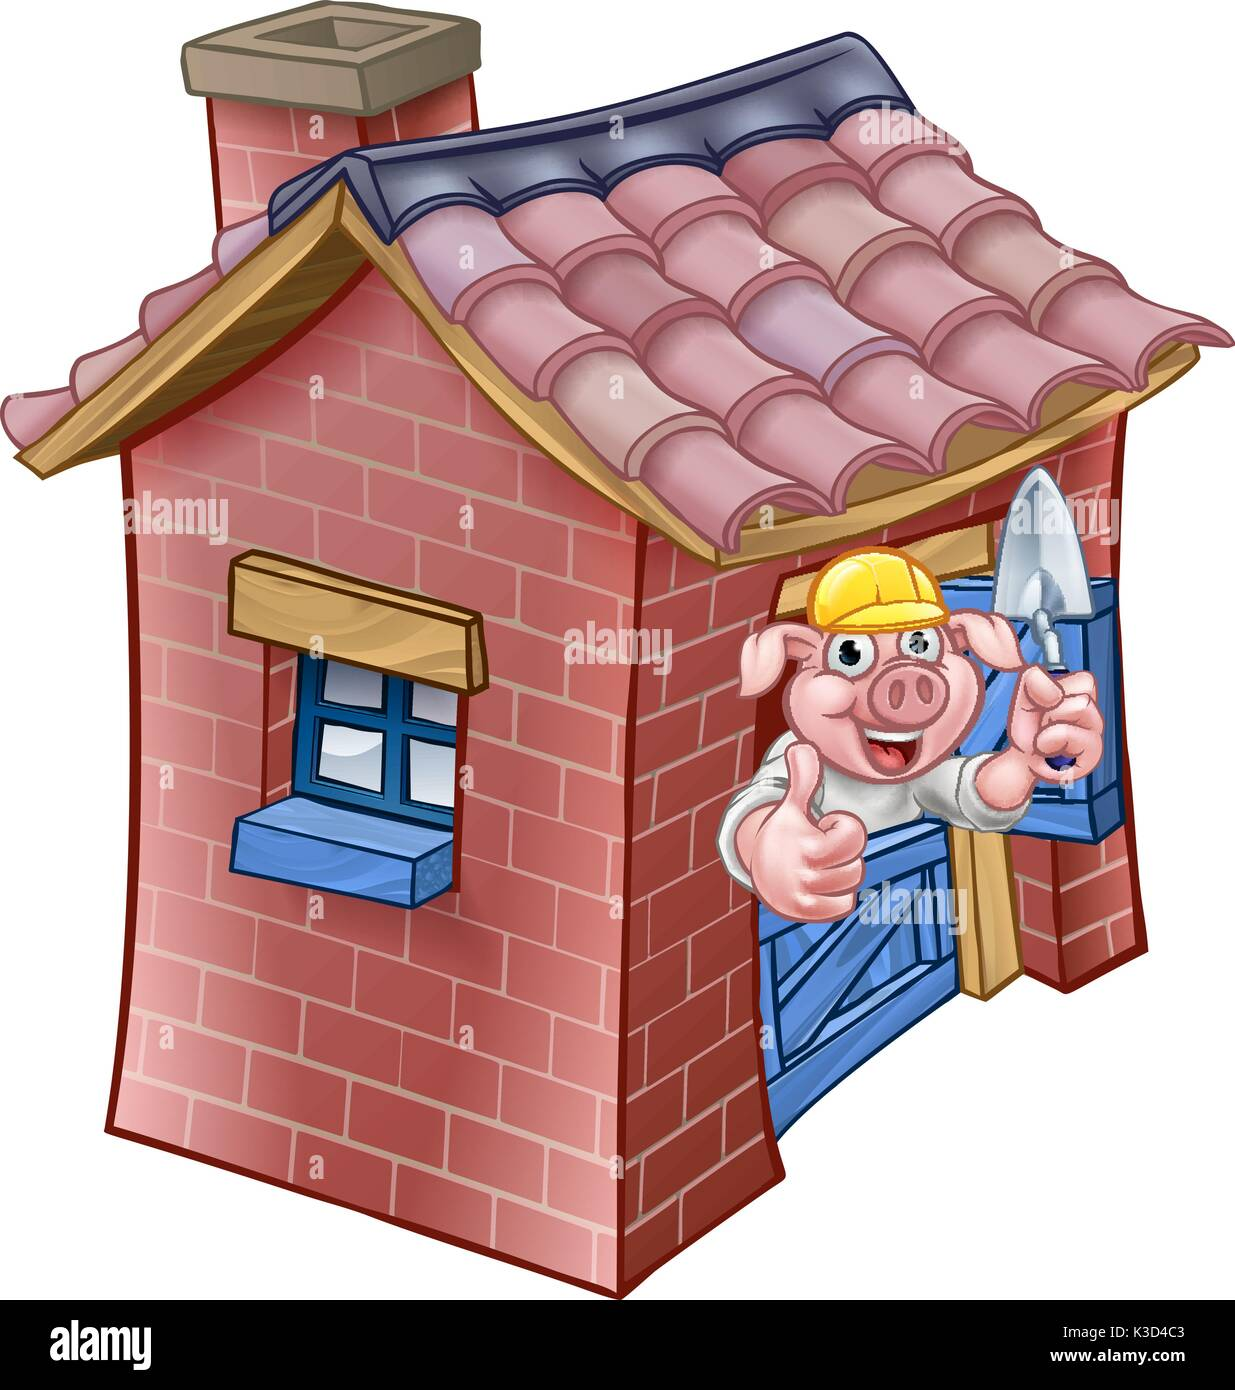 Three Little Pigs Straw House Stock Photos & Three Little Pigs Straw ...